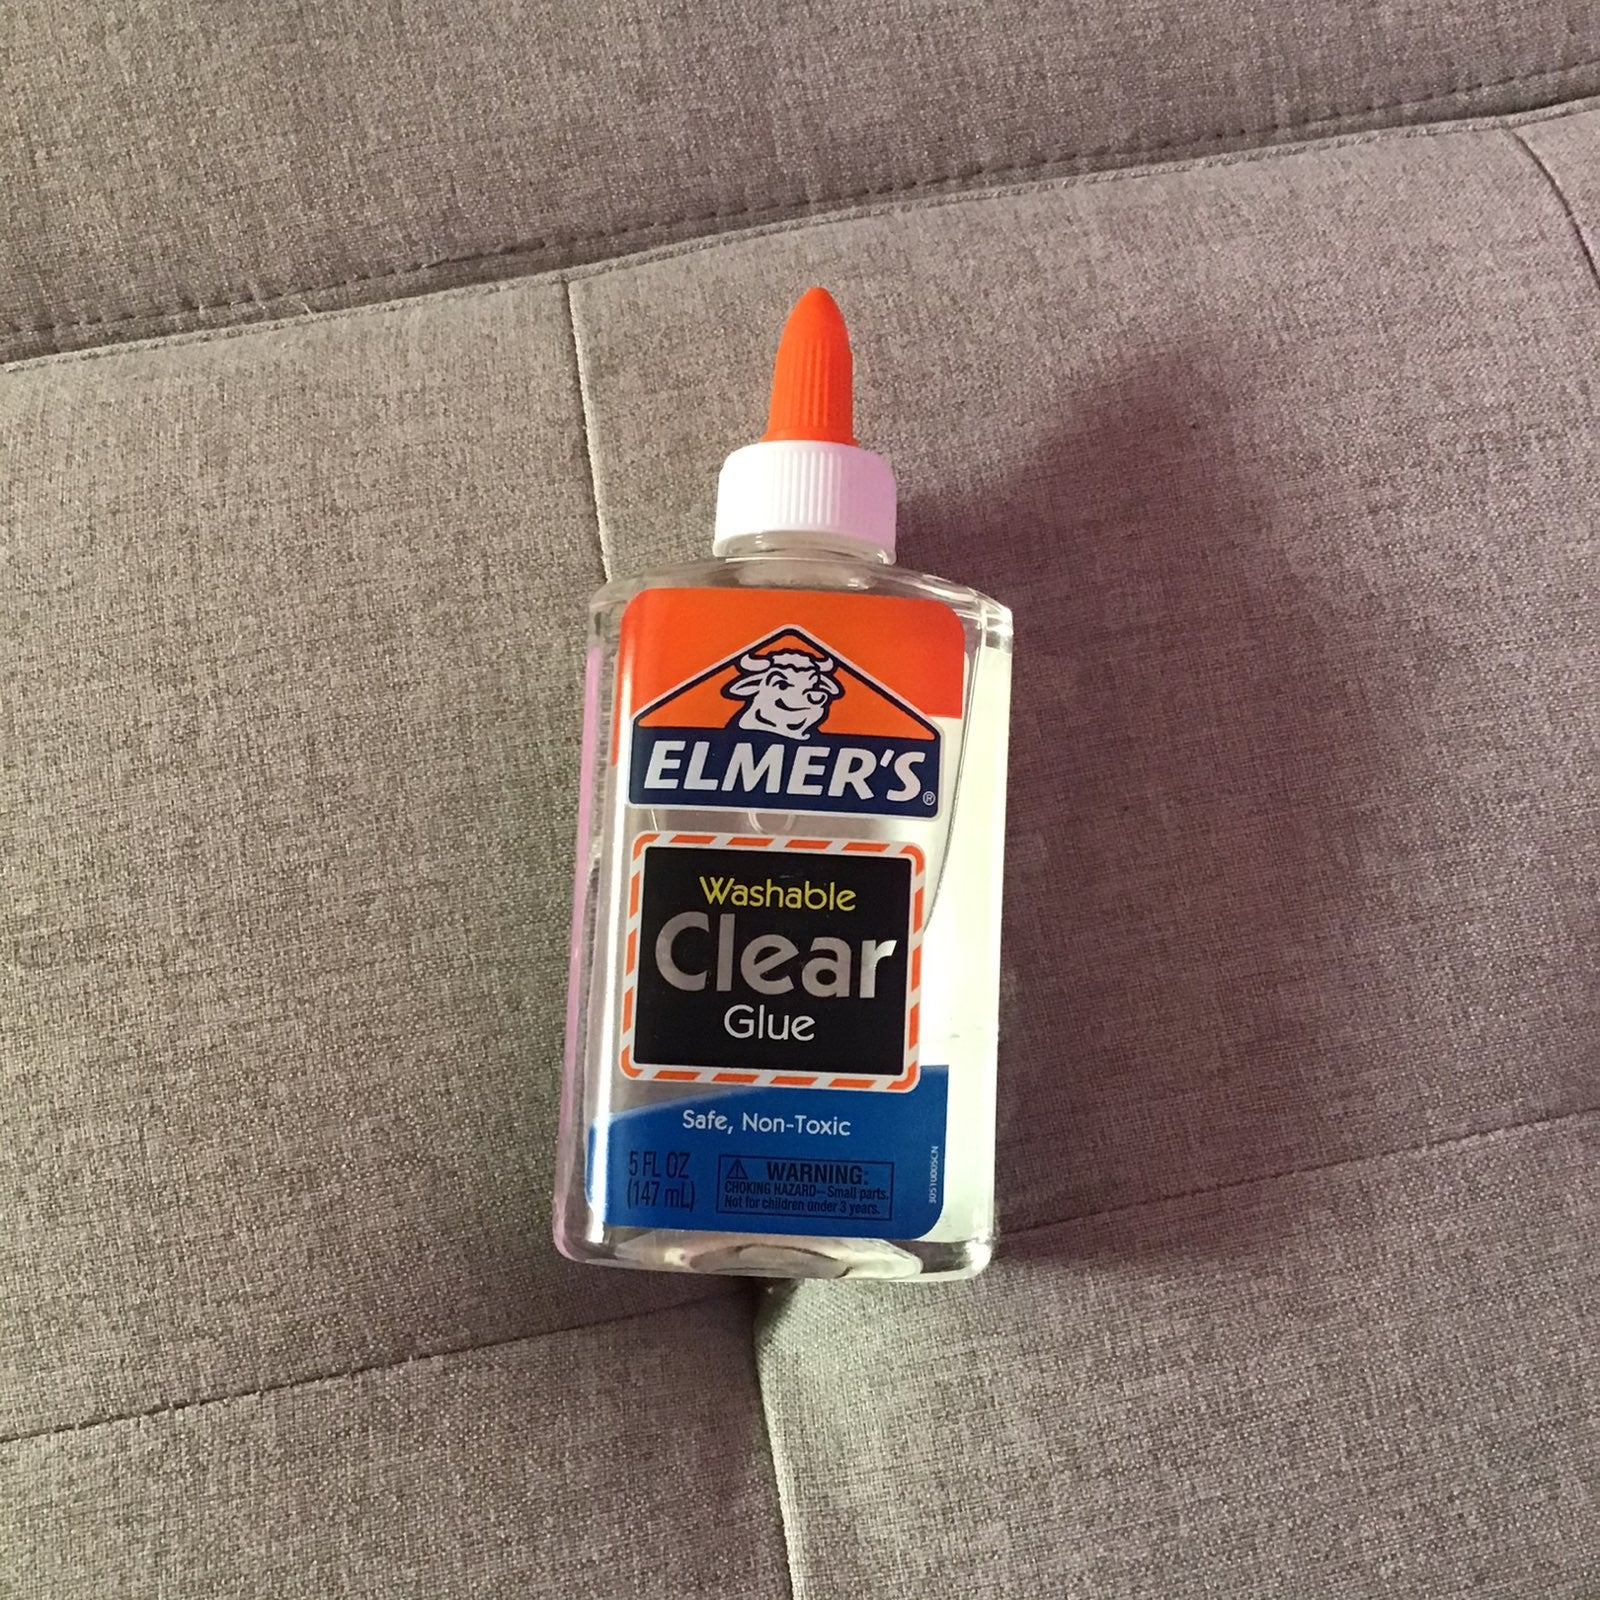 Elmers clear glue 5oz